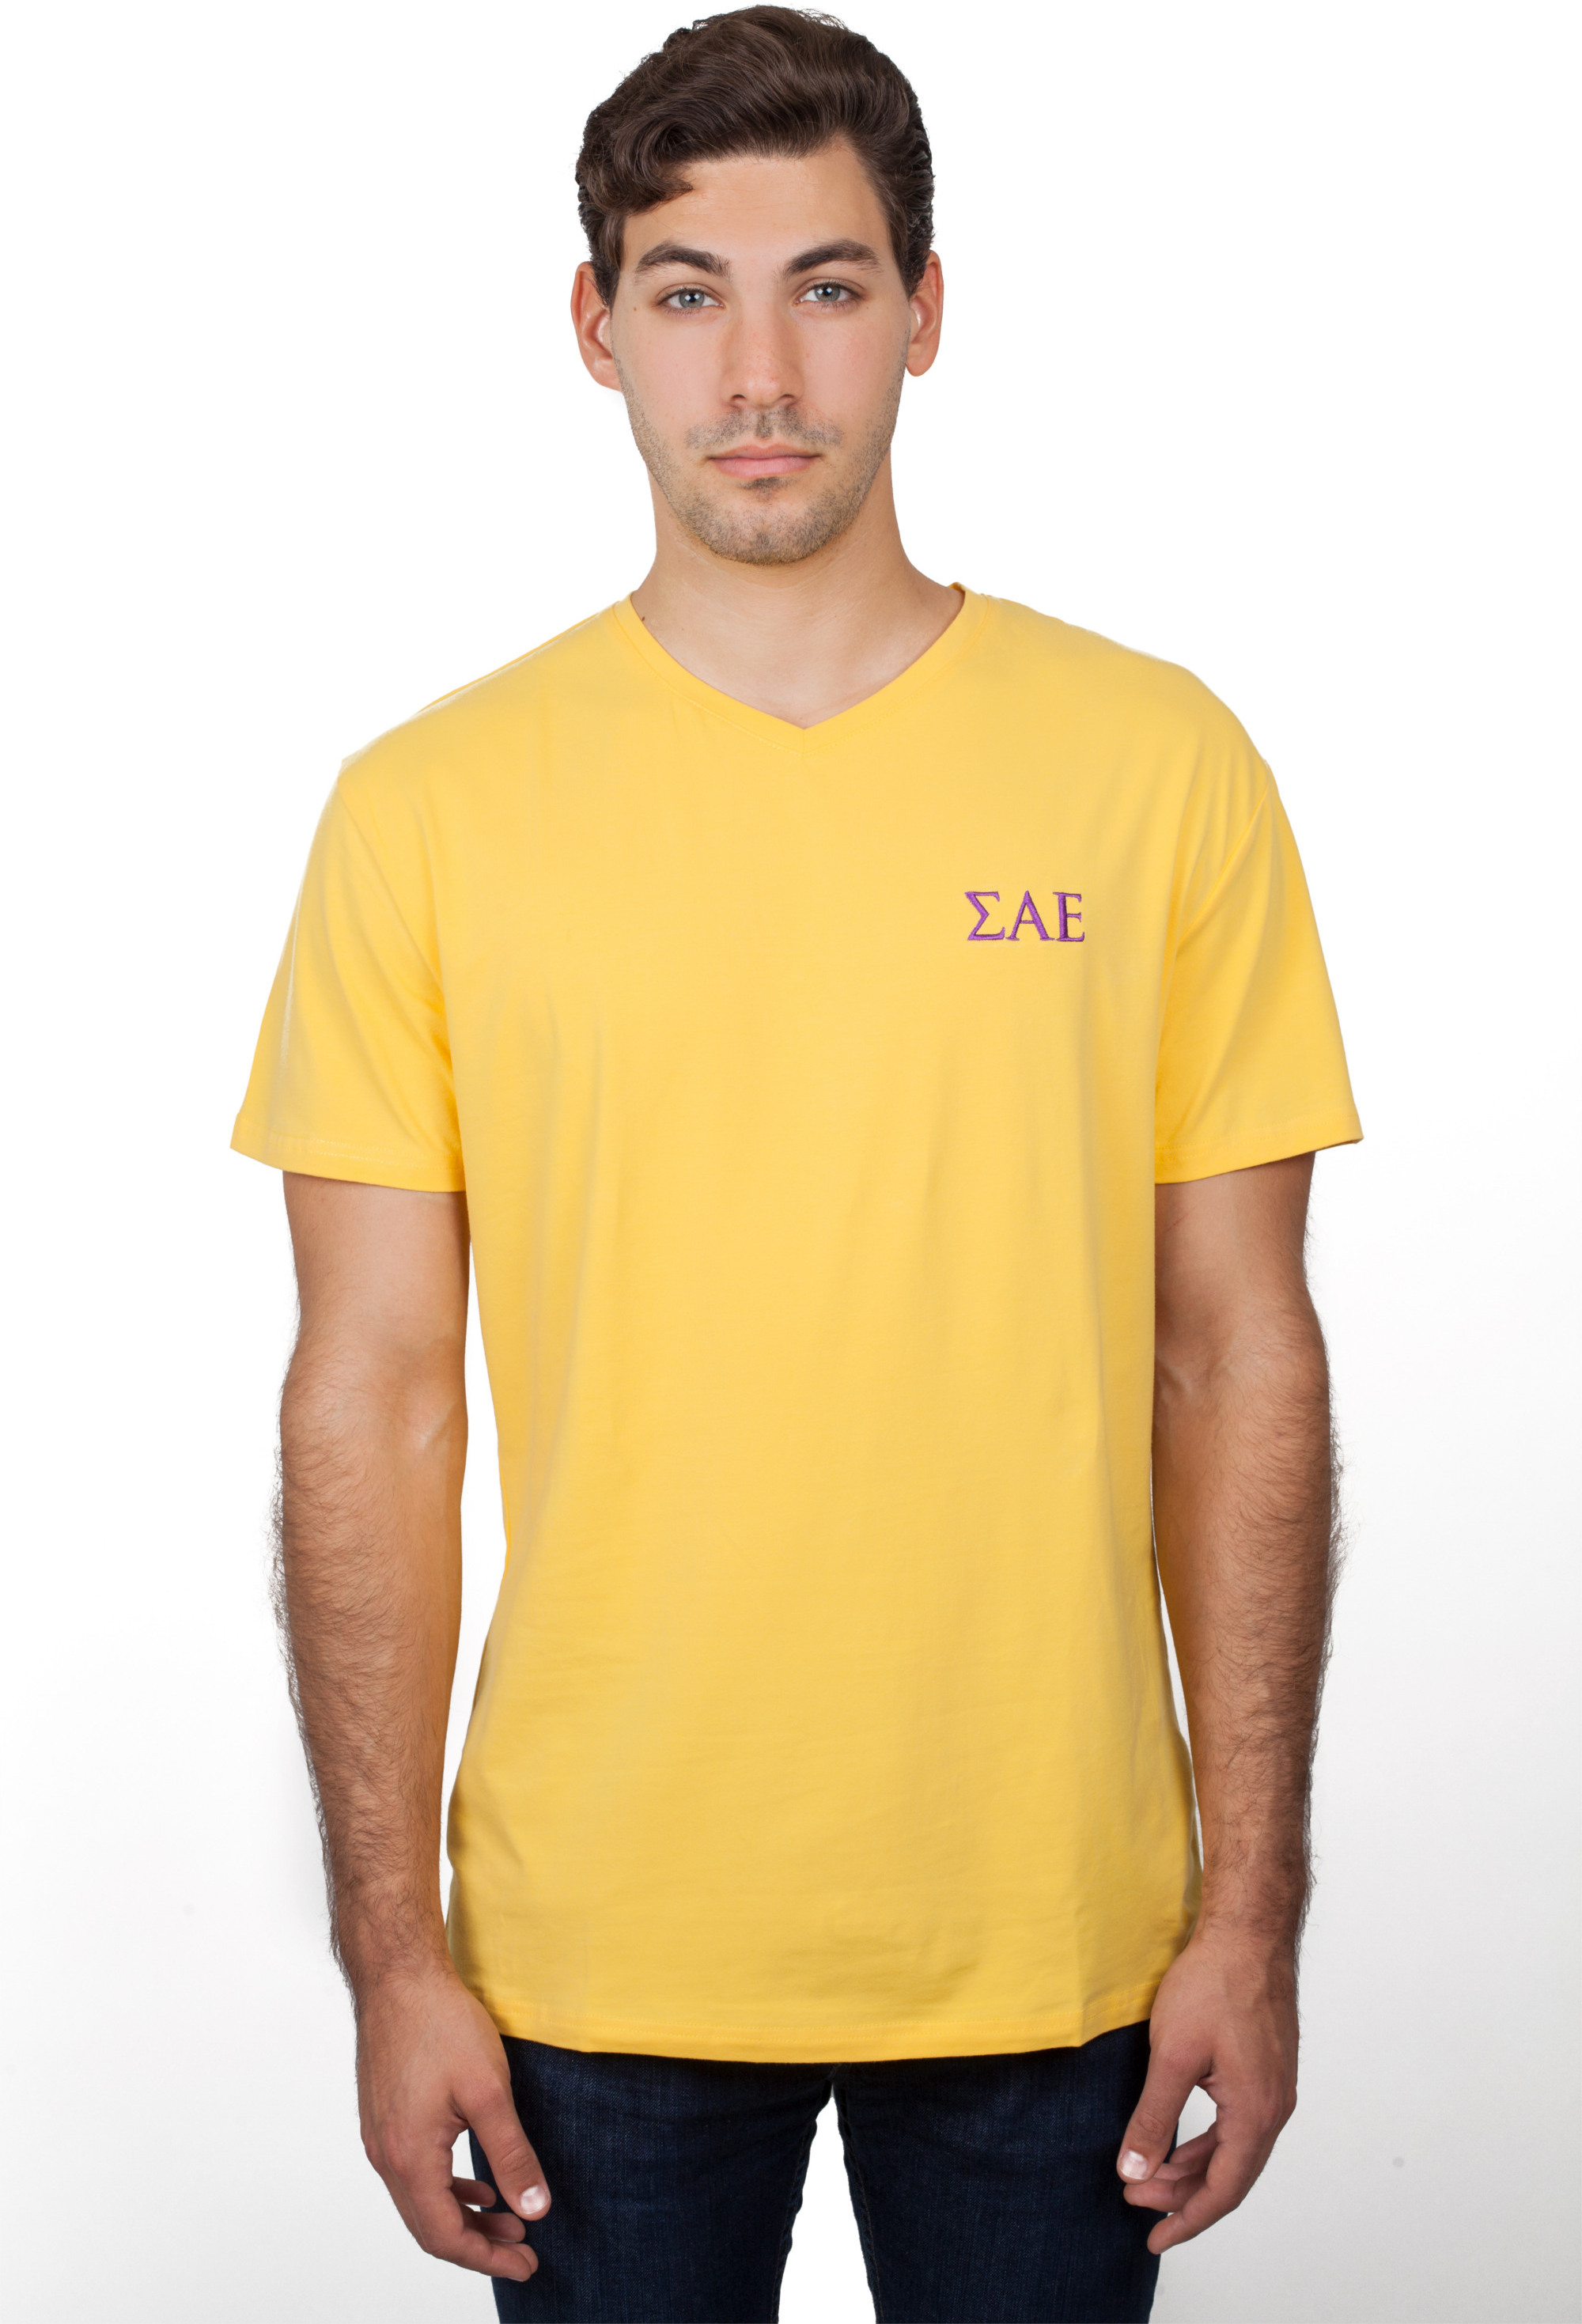 Find sigma alpha epsilon from a vast selection of Fashion. Get great deals on eBay!